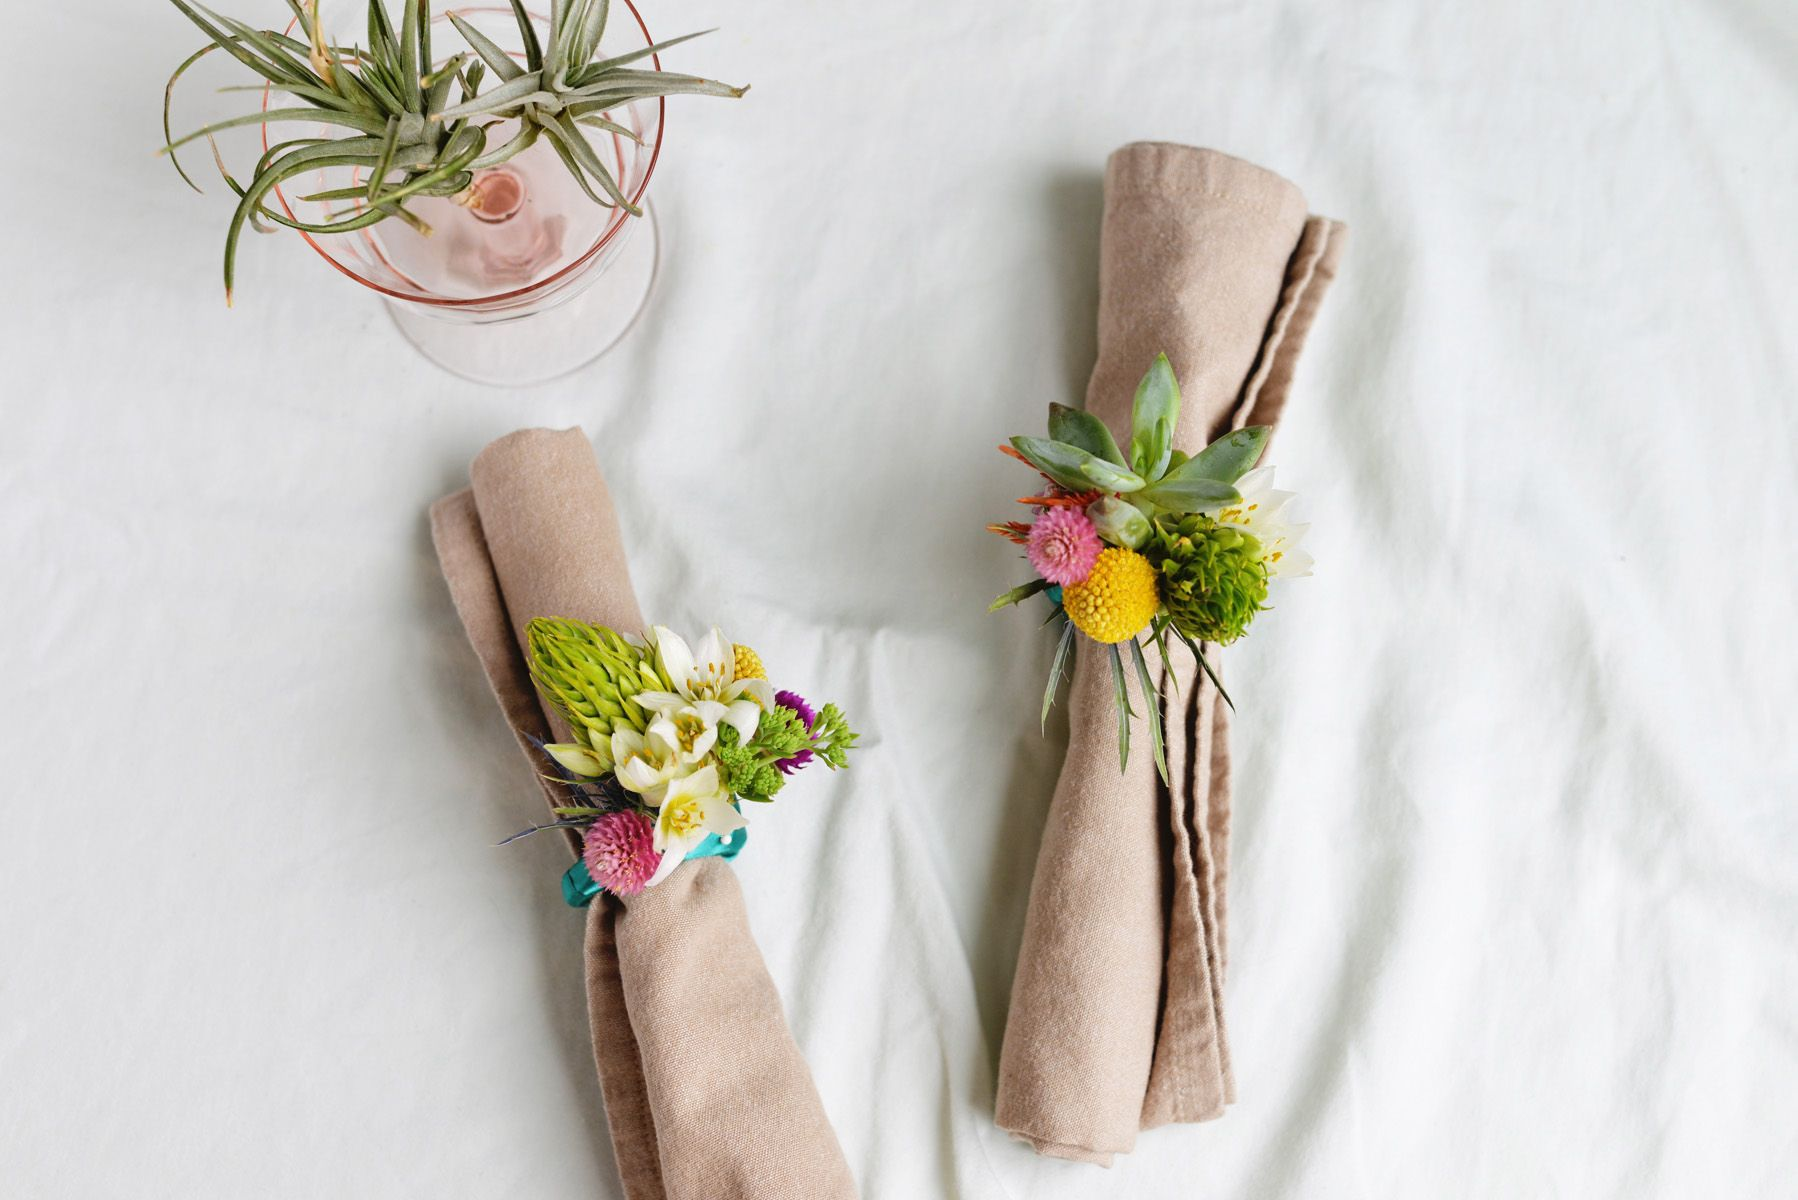 Clebrate Summer with a DIY Floral Napkin Rings